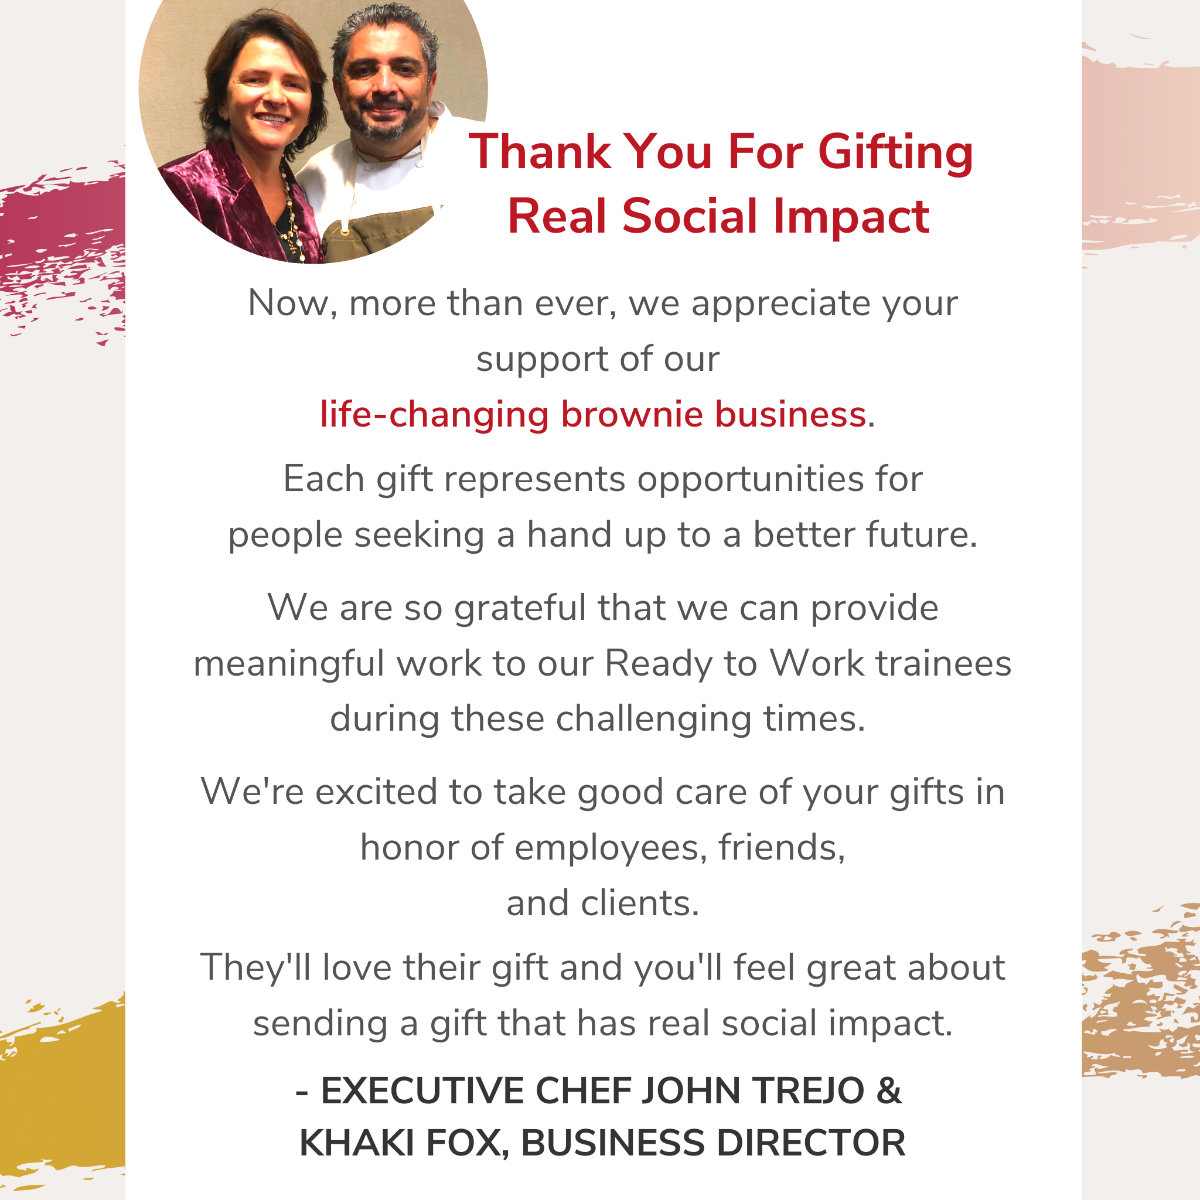 Gifts With Real Social Impact